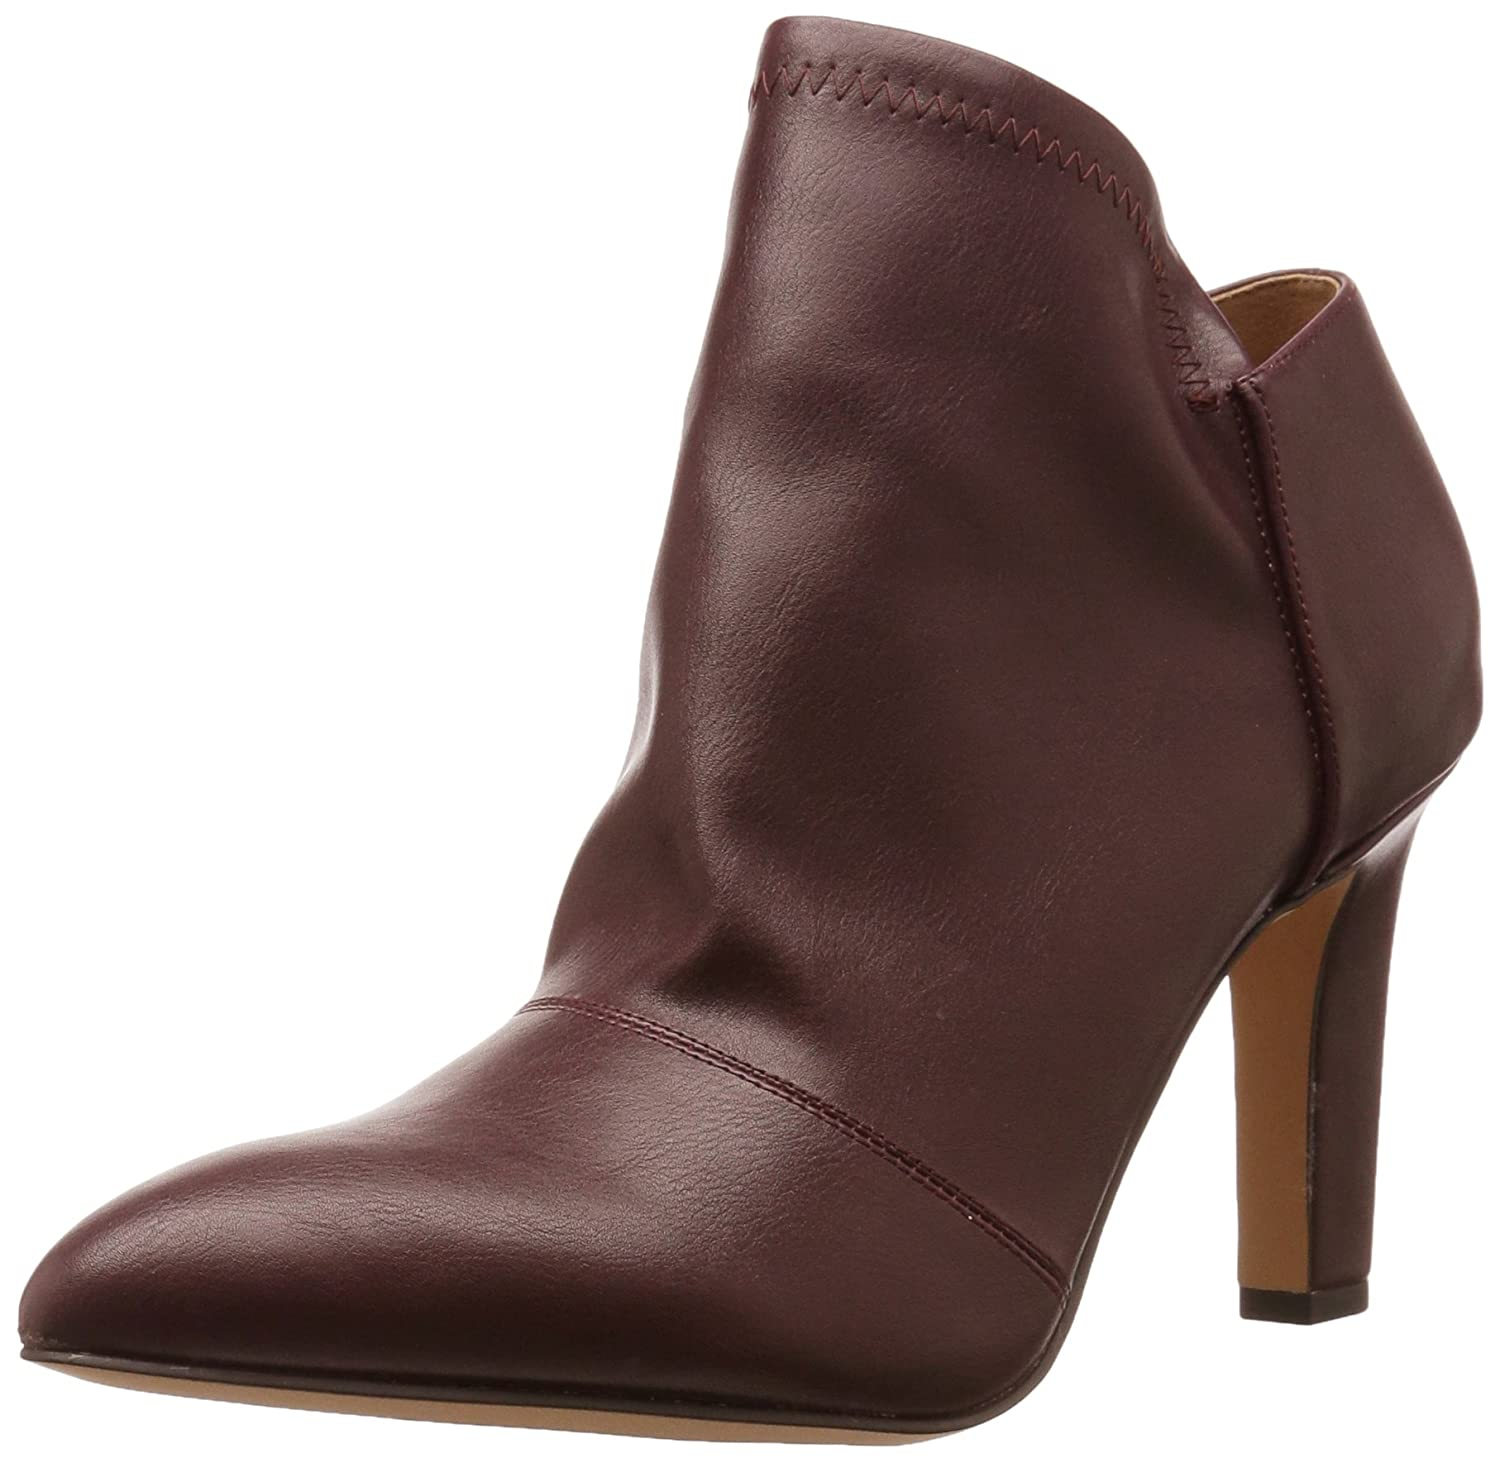 Franco Sarto Women's Kairi Ankle Boot B073VC72X4 8.5 B(M) US|Dark Burgundy